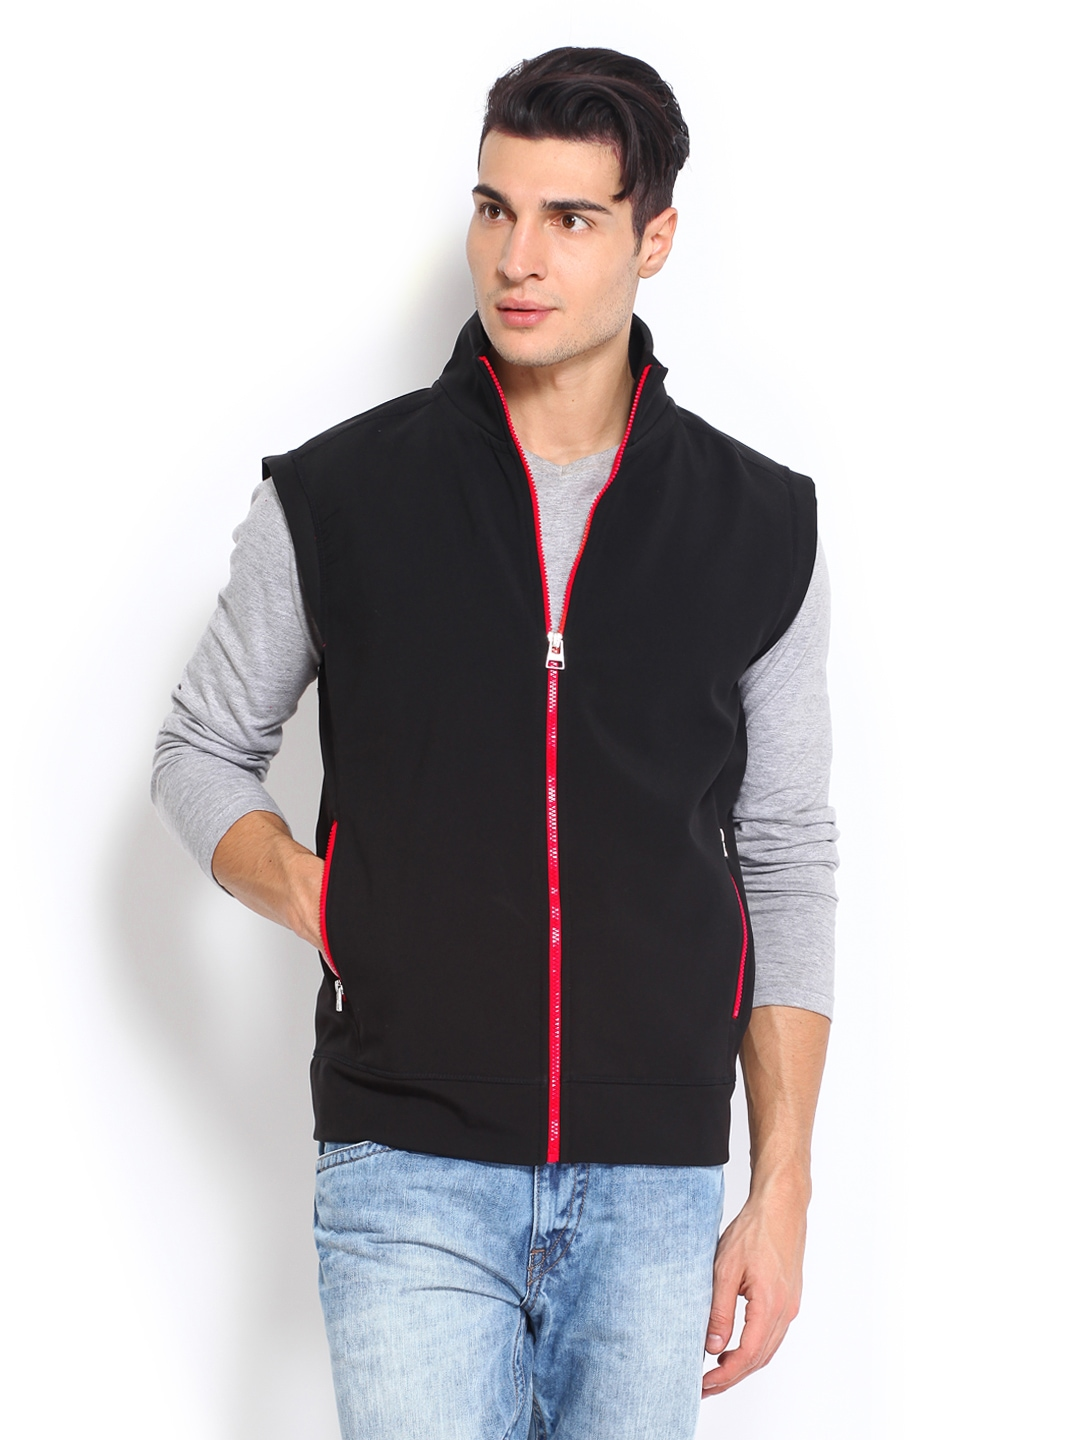 Find great deals on eBay for Sleeveless Denim Jacket Men in Men's Vest and Clothing. Shop with confidence. Find great deals on eBay for Sleeveless Denim Jacket Men in Men's Vest and Clothing. Fashion Mens Black Denim Cowboy Vest Sleeveless Jacket Male Hole Jeans Waistcoat. $ Buy It Now. 7+ watching; Material:Cotton blend.